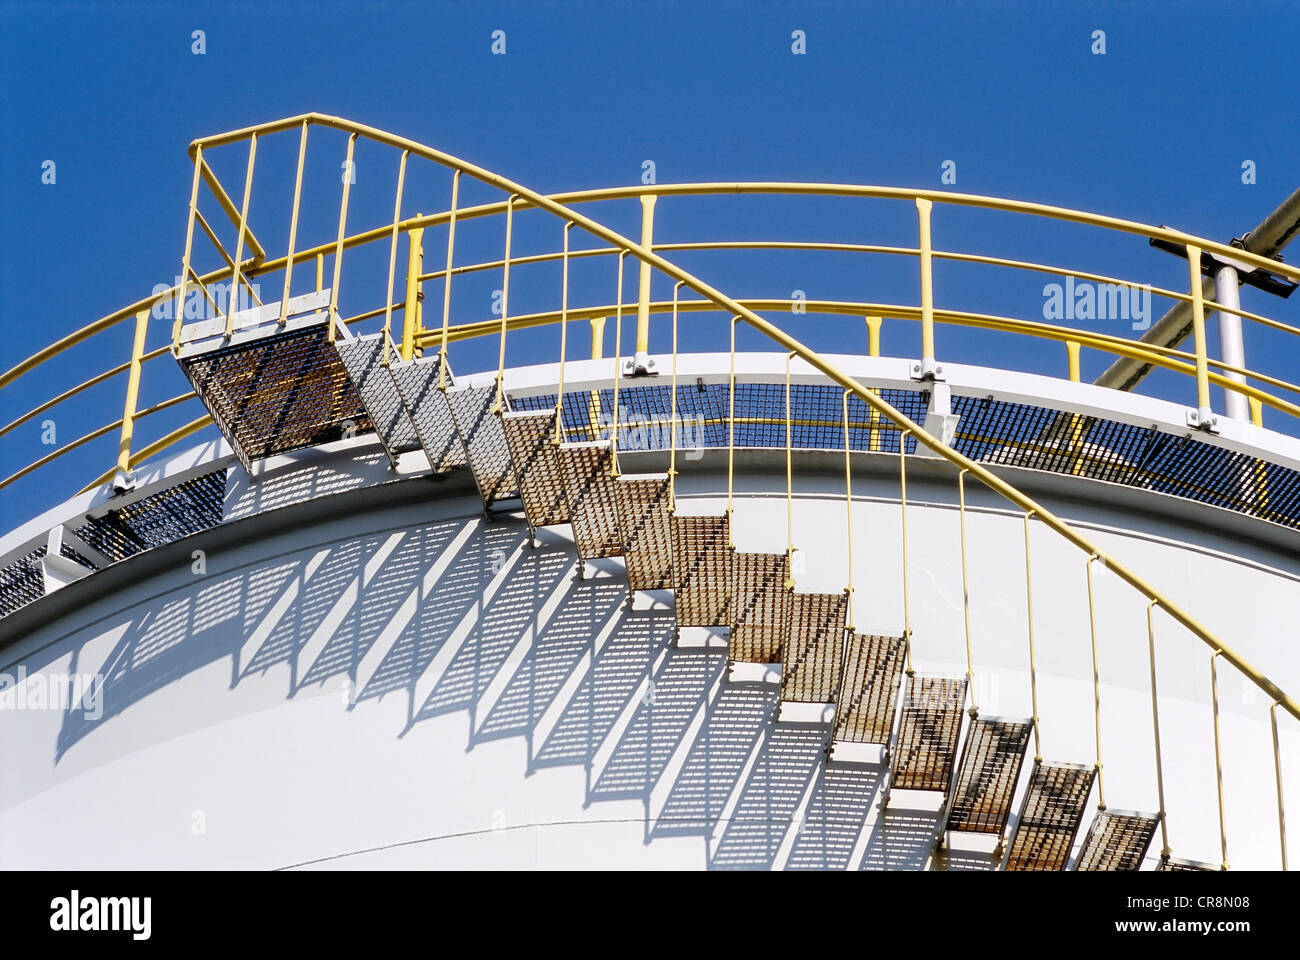 Stairs on a tank containing hydrochloric acid, Chempark Krefeld-Uerdingen industrial park, formerly known as Bayer - Stock Image